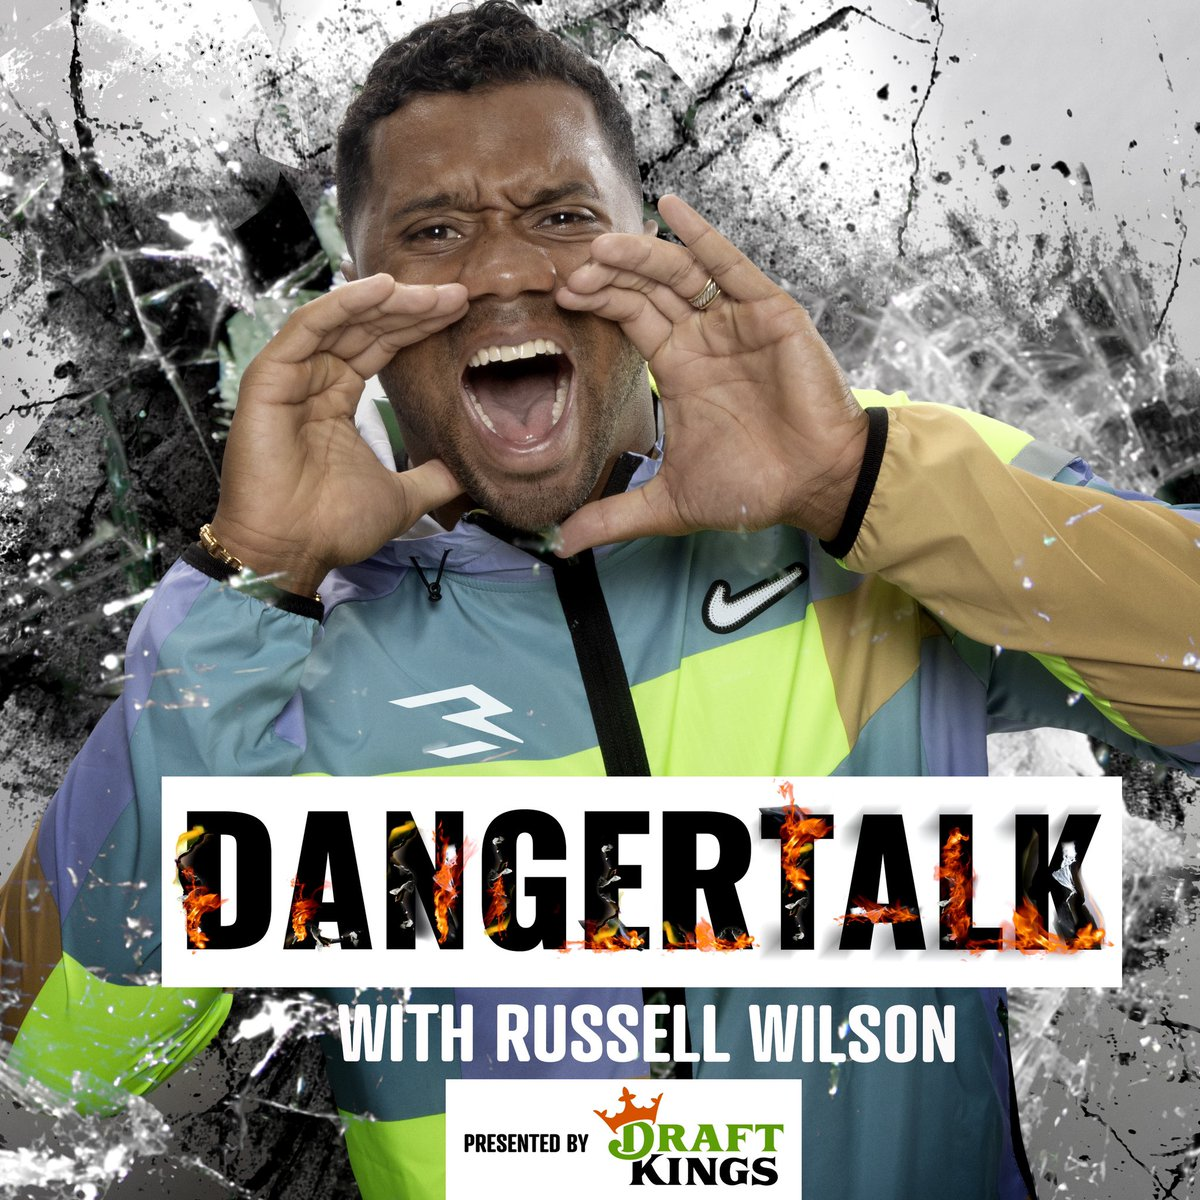 PROUD OF MY HONEY @DANGERUSSWILSON LAUNCHING HIS NEW SHOW AND PODCAST TODAY @DangerTalkPod ! CHECK IT OUT ON @ApplePodcasts SO GOOD! @espn 💃🏽 https://t.co/DyFRqqMfVt